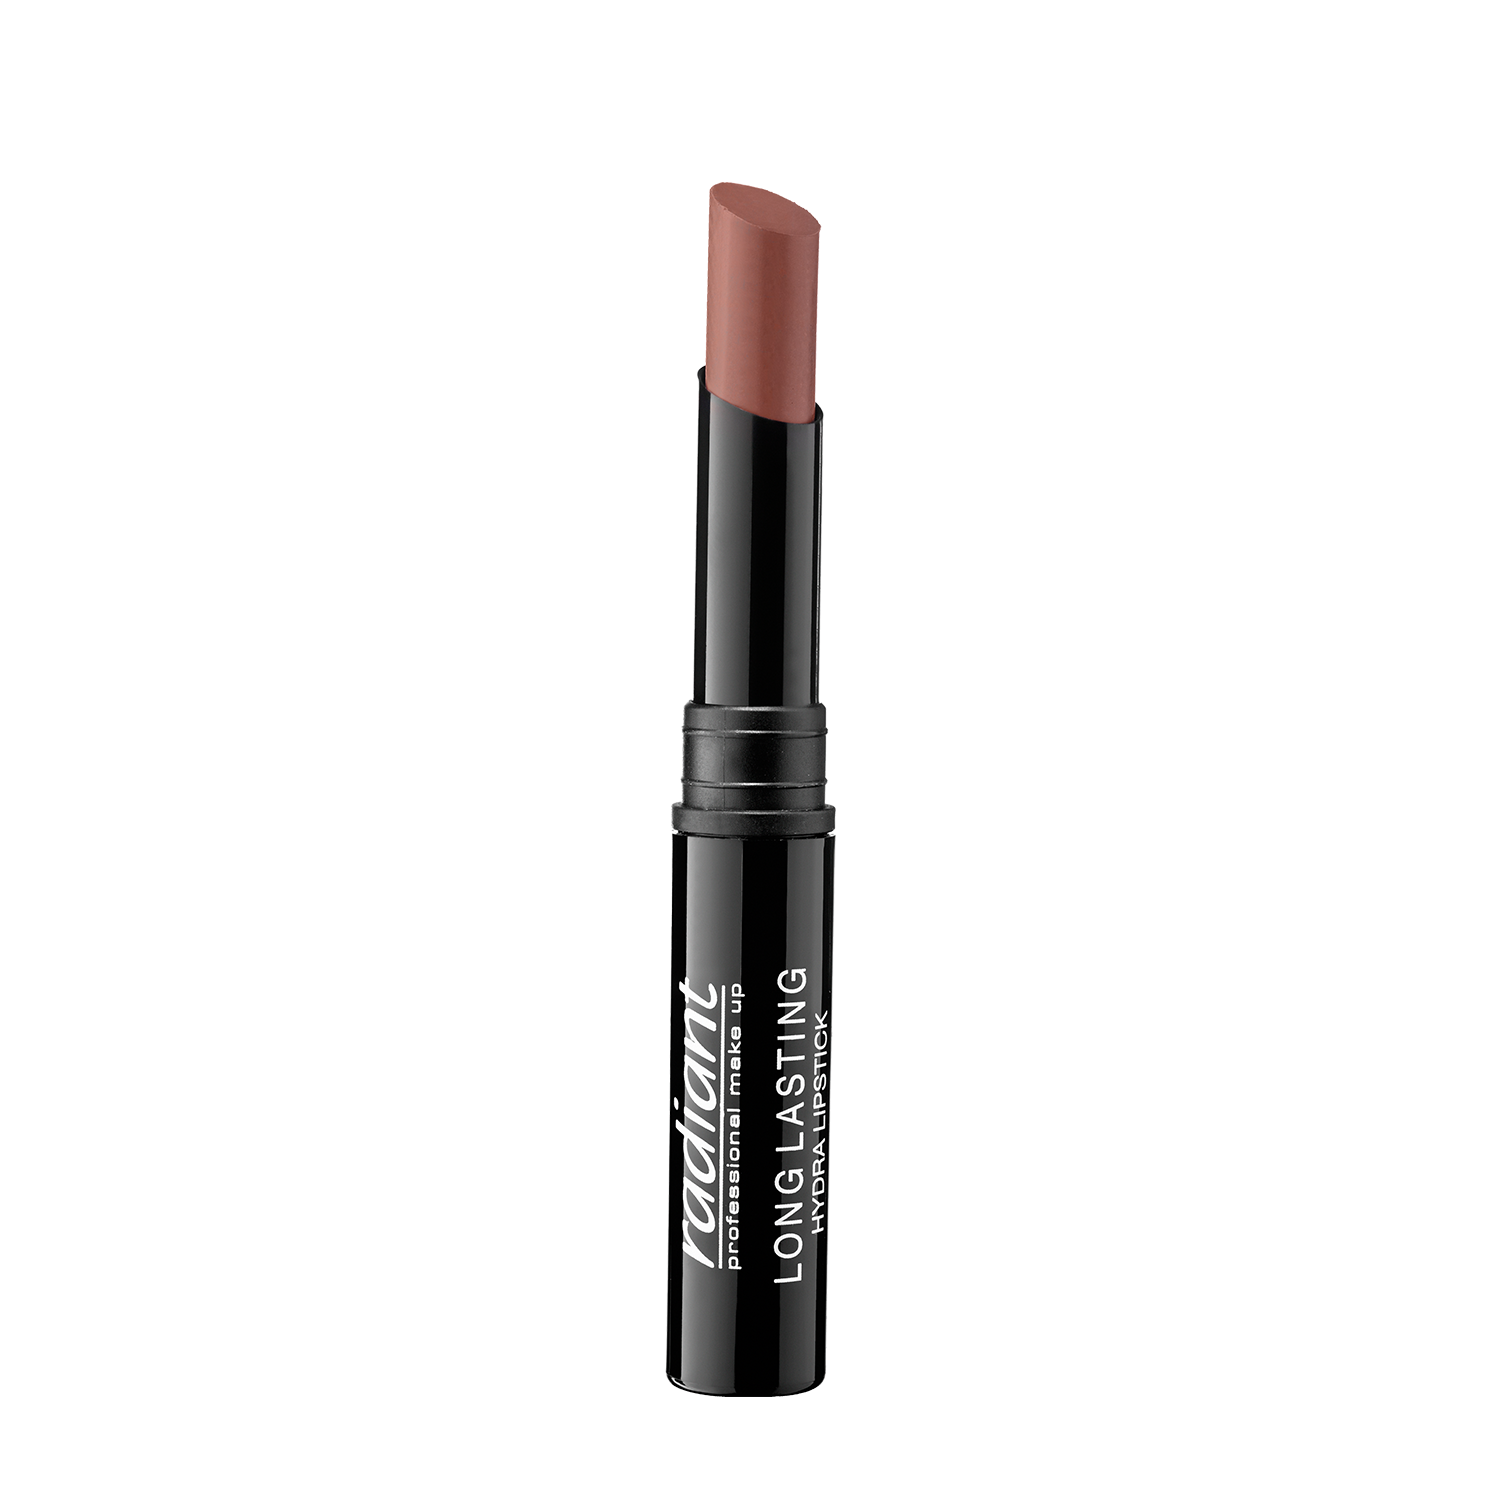 LONG LASTING HYDRA LIPSTICK (26 Toffee)